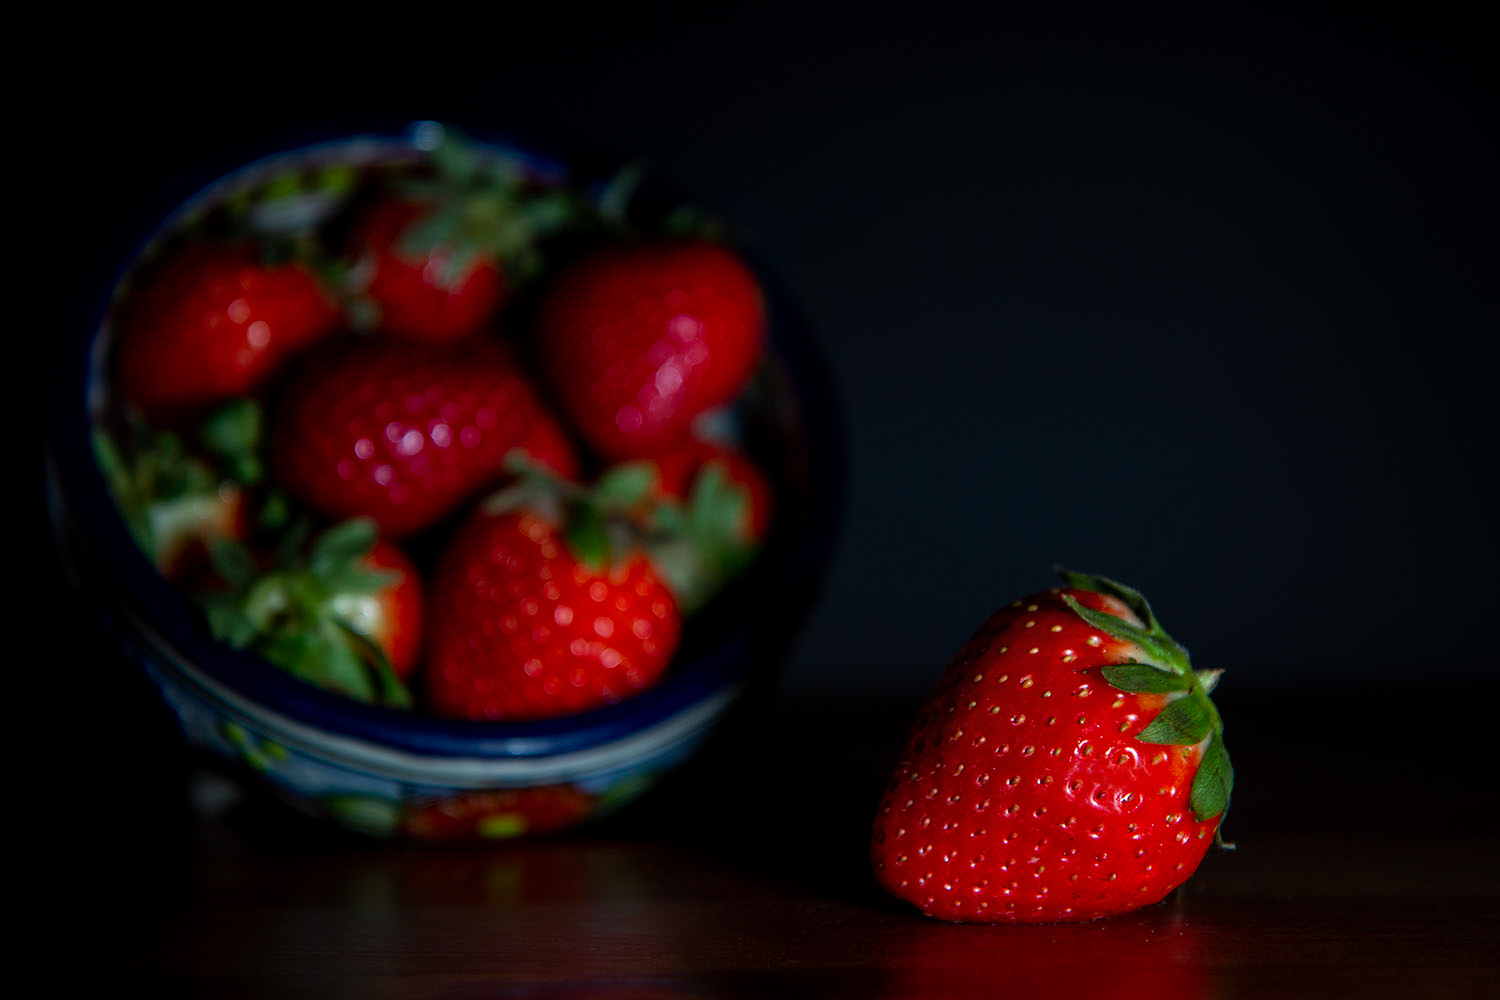 food photography ideas strawberry in dramatic light